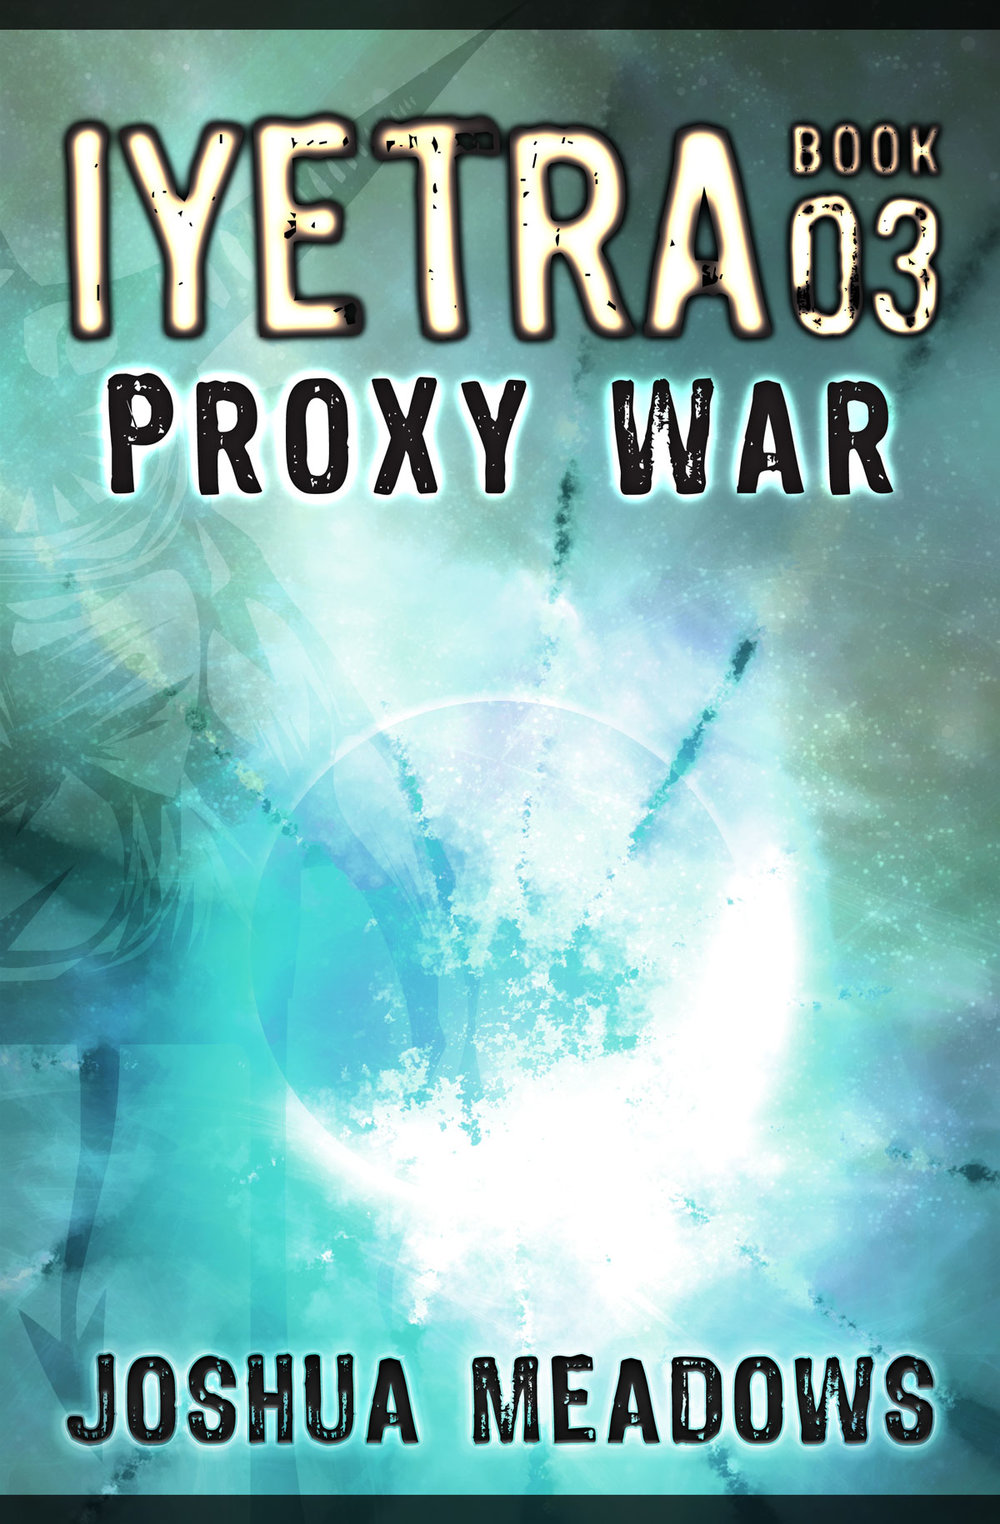 Book 03 : Proxy War